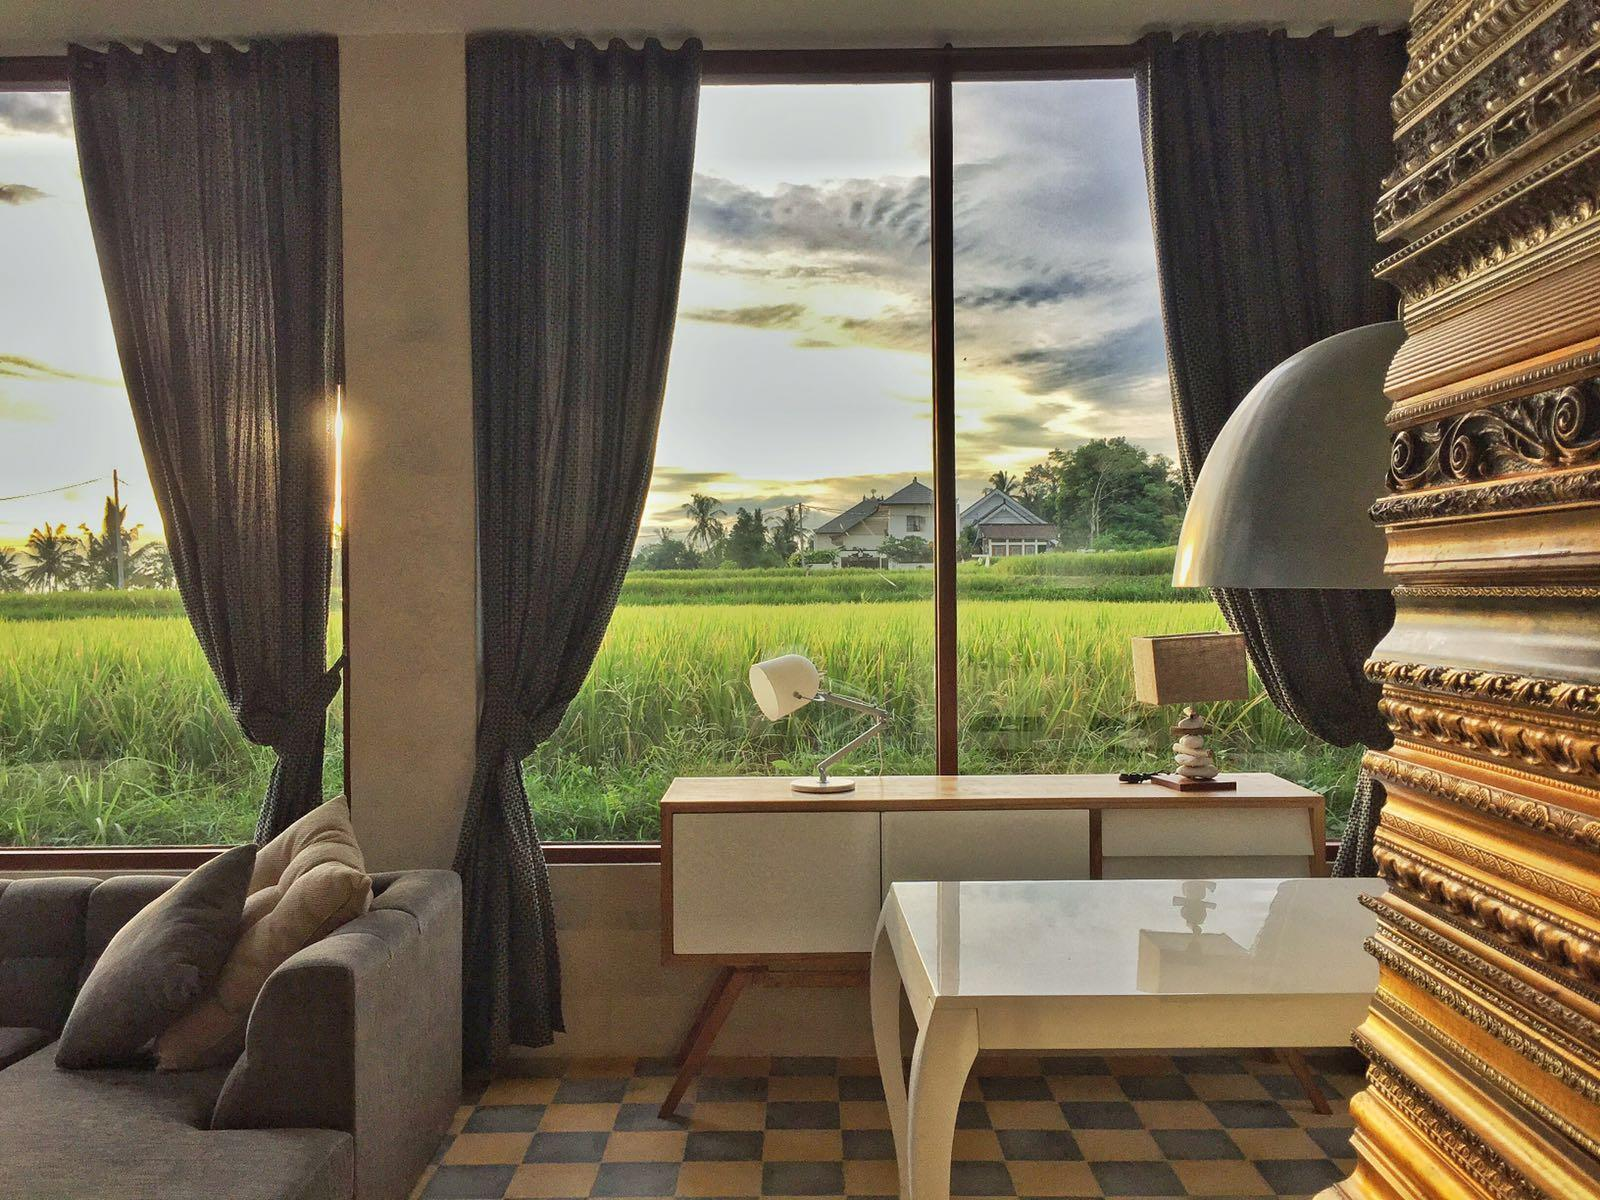 3 Bedroom Sunset Villa with Rice Paddy View